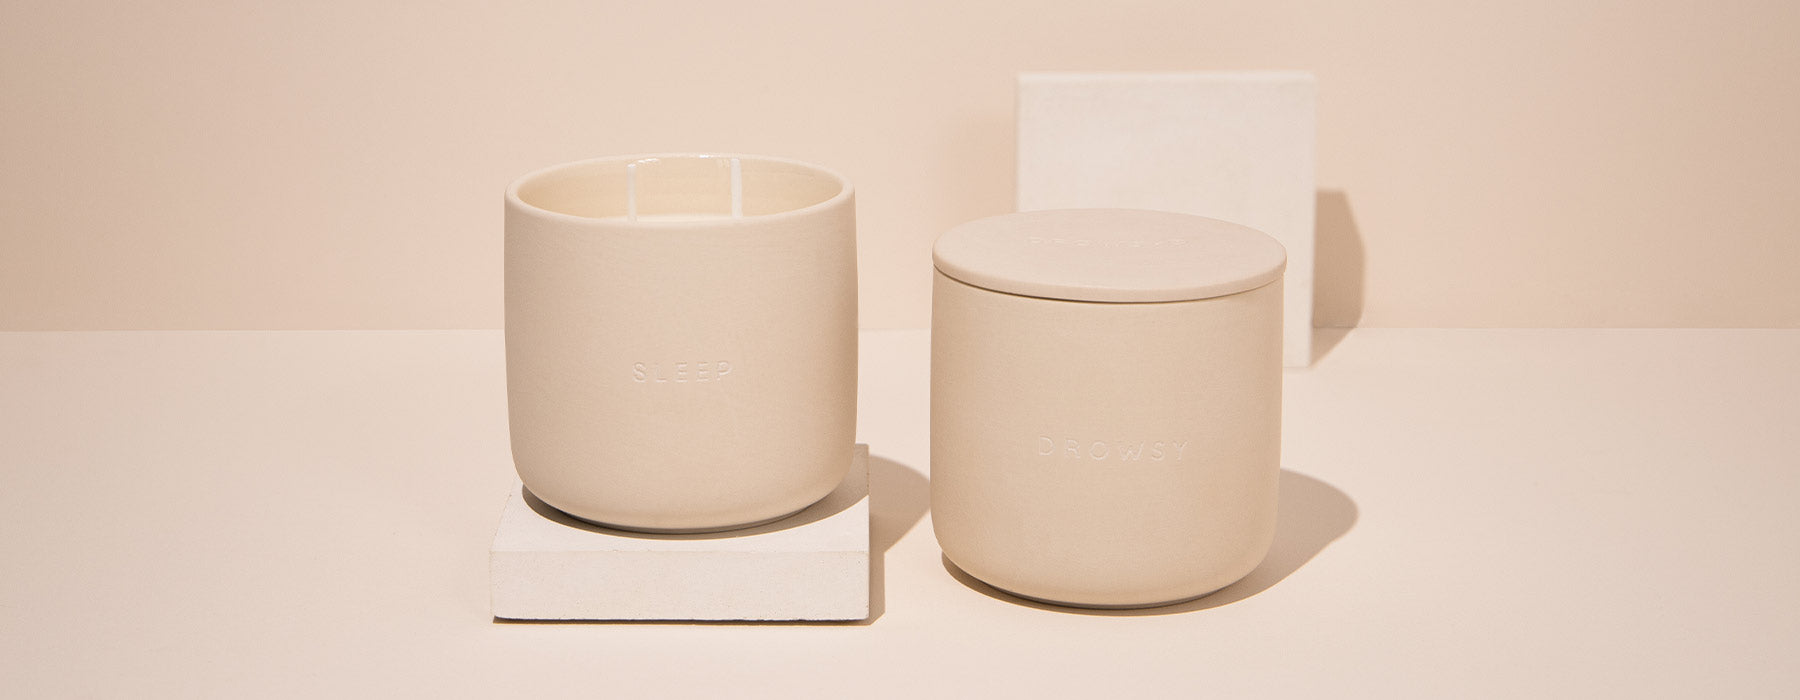 2 ceramic candle jars on a cream coloured background